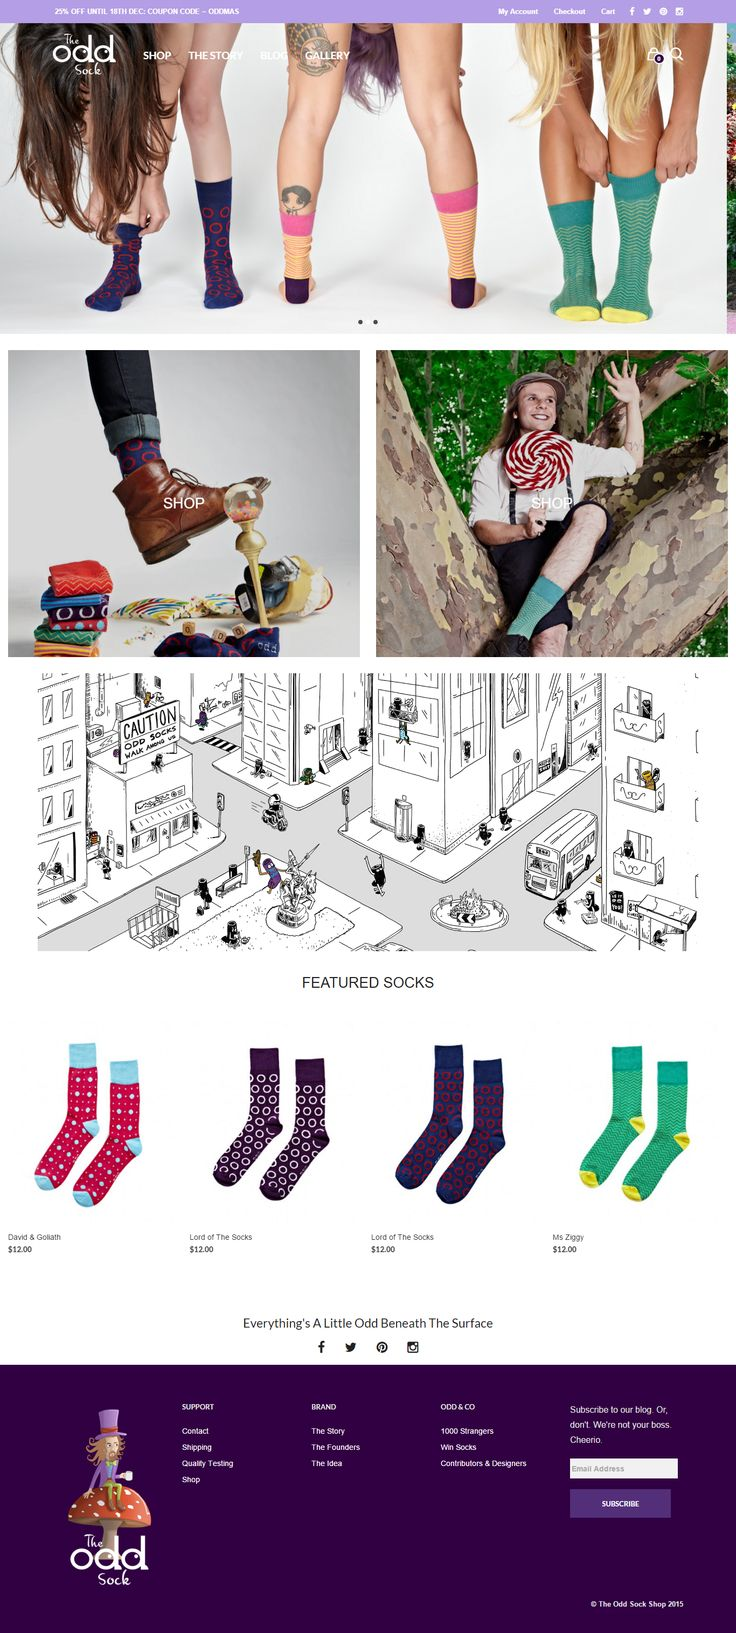 The story of The Odd Sock, powered by Mr Tailor #wptheme http://www.getbowtied.com/customer-stories-sock-company-the-odd-sock/?utm_source=pinterest.com&utm_medium=social&utm_content=odd-sock&utm_campaign=customer-stories #creativesocks #ecommerce #wordpress #bestwebsites #webdesign #templates #onlineshop